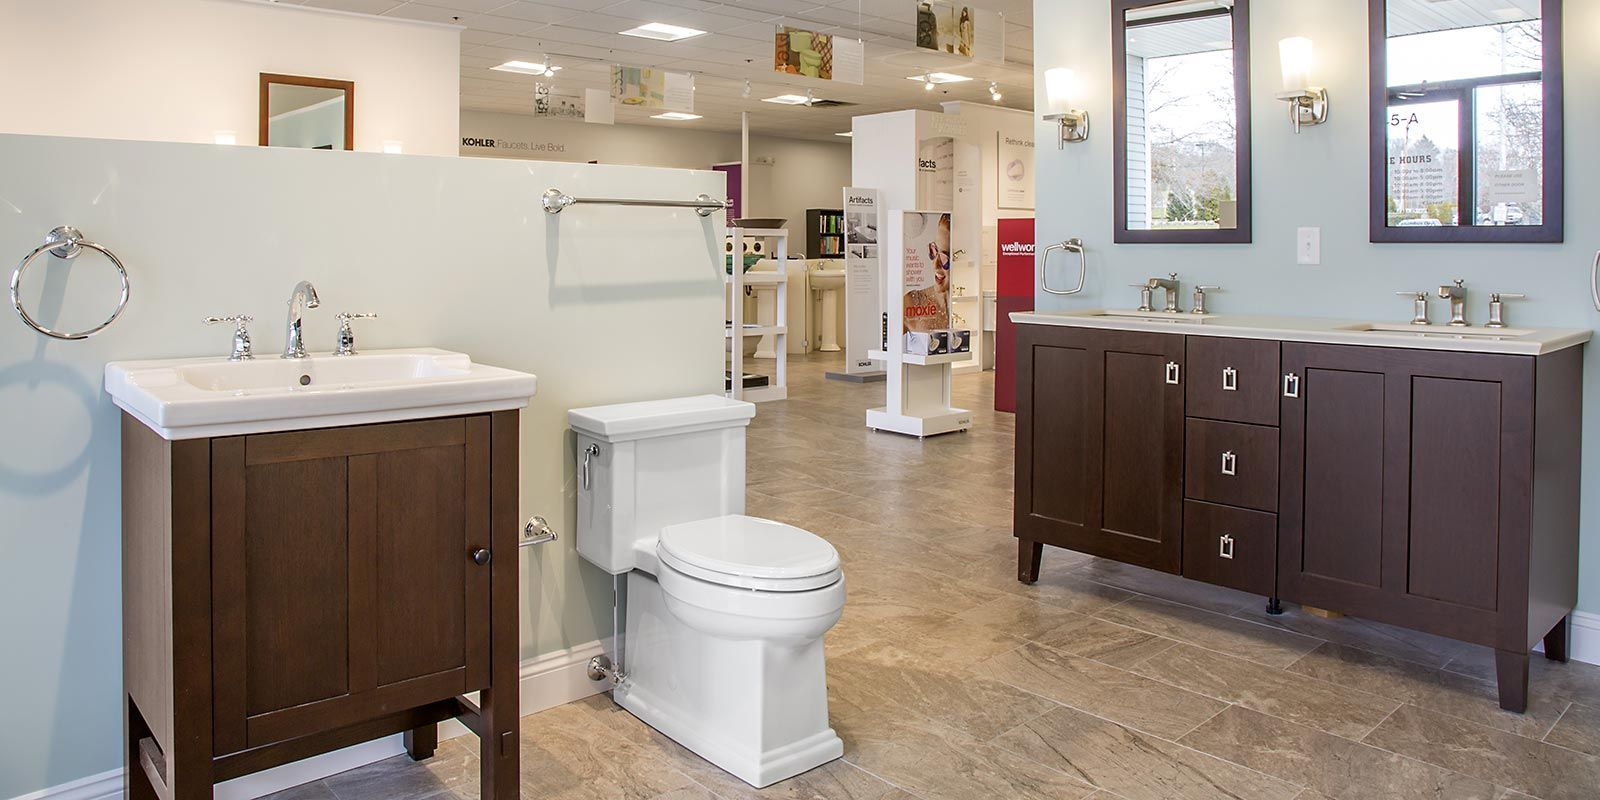 The Inspired Bath Bath And Kitchen Products Showrooms In Dartmouth Massachusetts And Middletown Rhode Kohler Showroom Bathroom Mirror Framed Bathroom Mirror